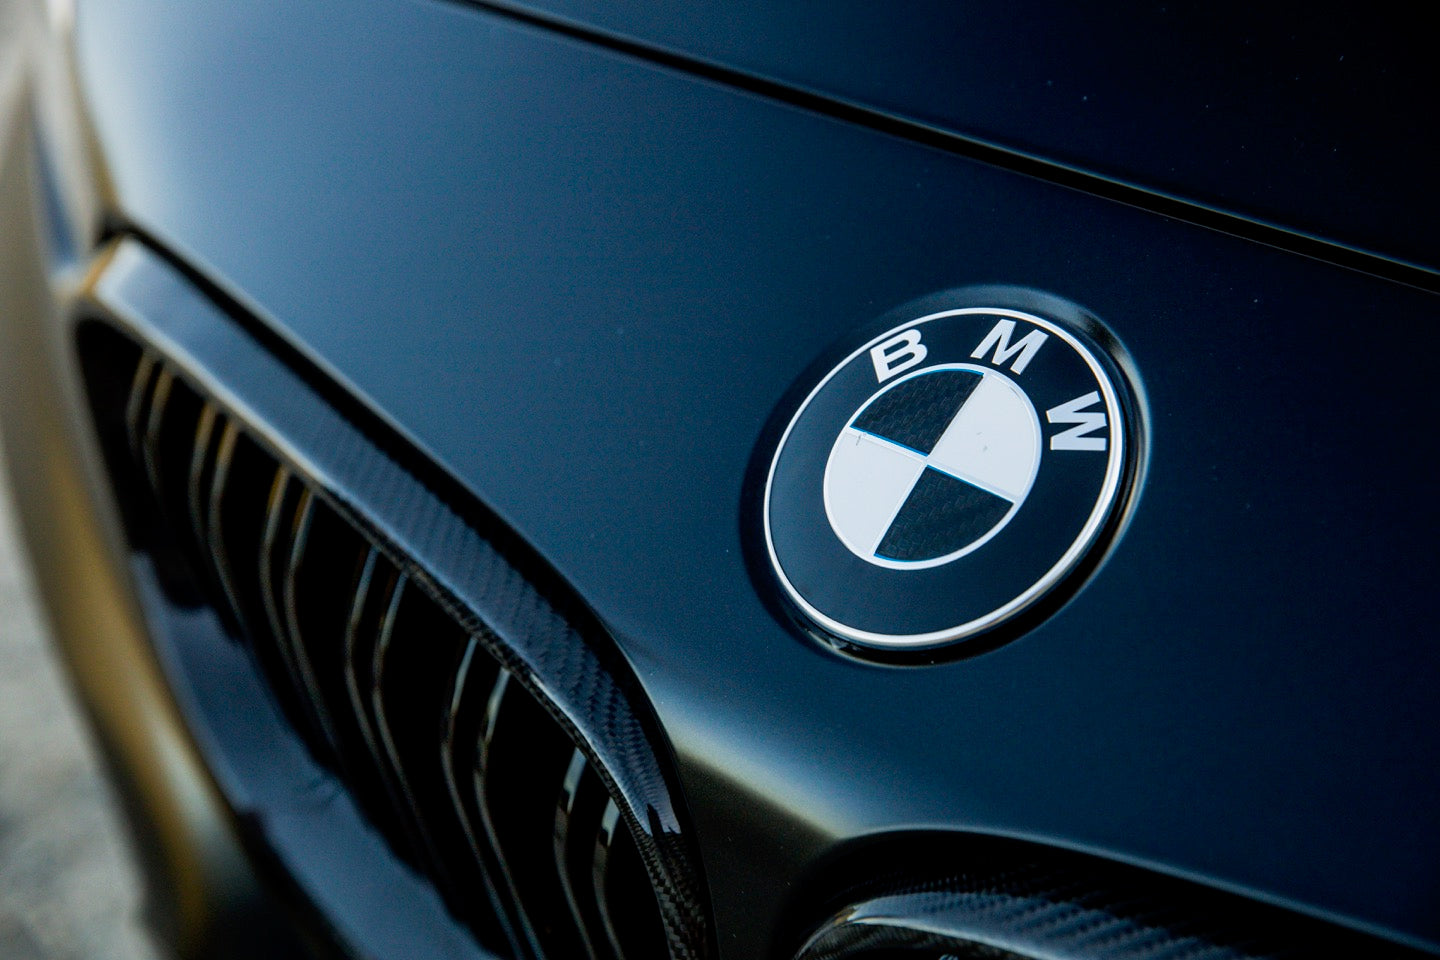 BMW ///M GRILLE - Exterior Accessories - Yomato Carbon - Montreal Canada